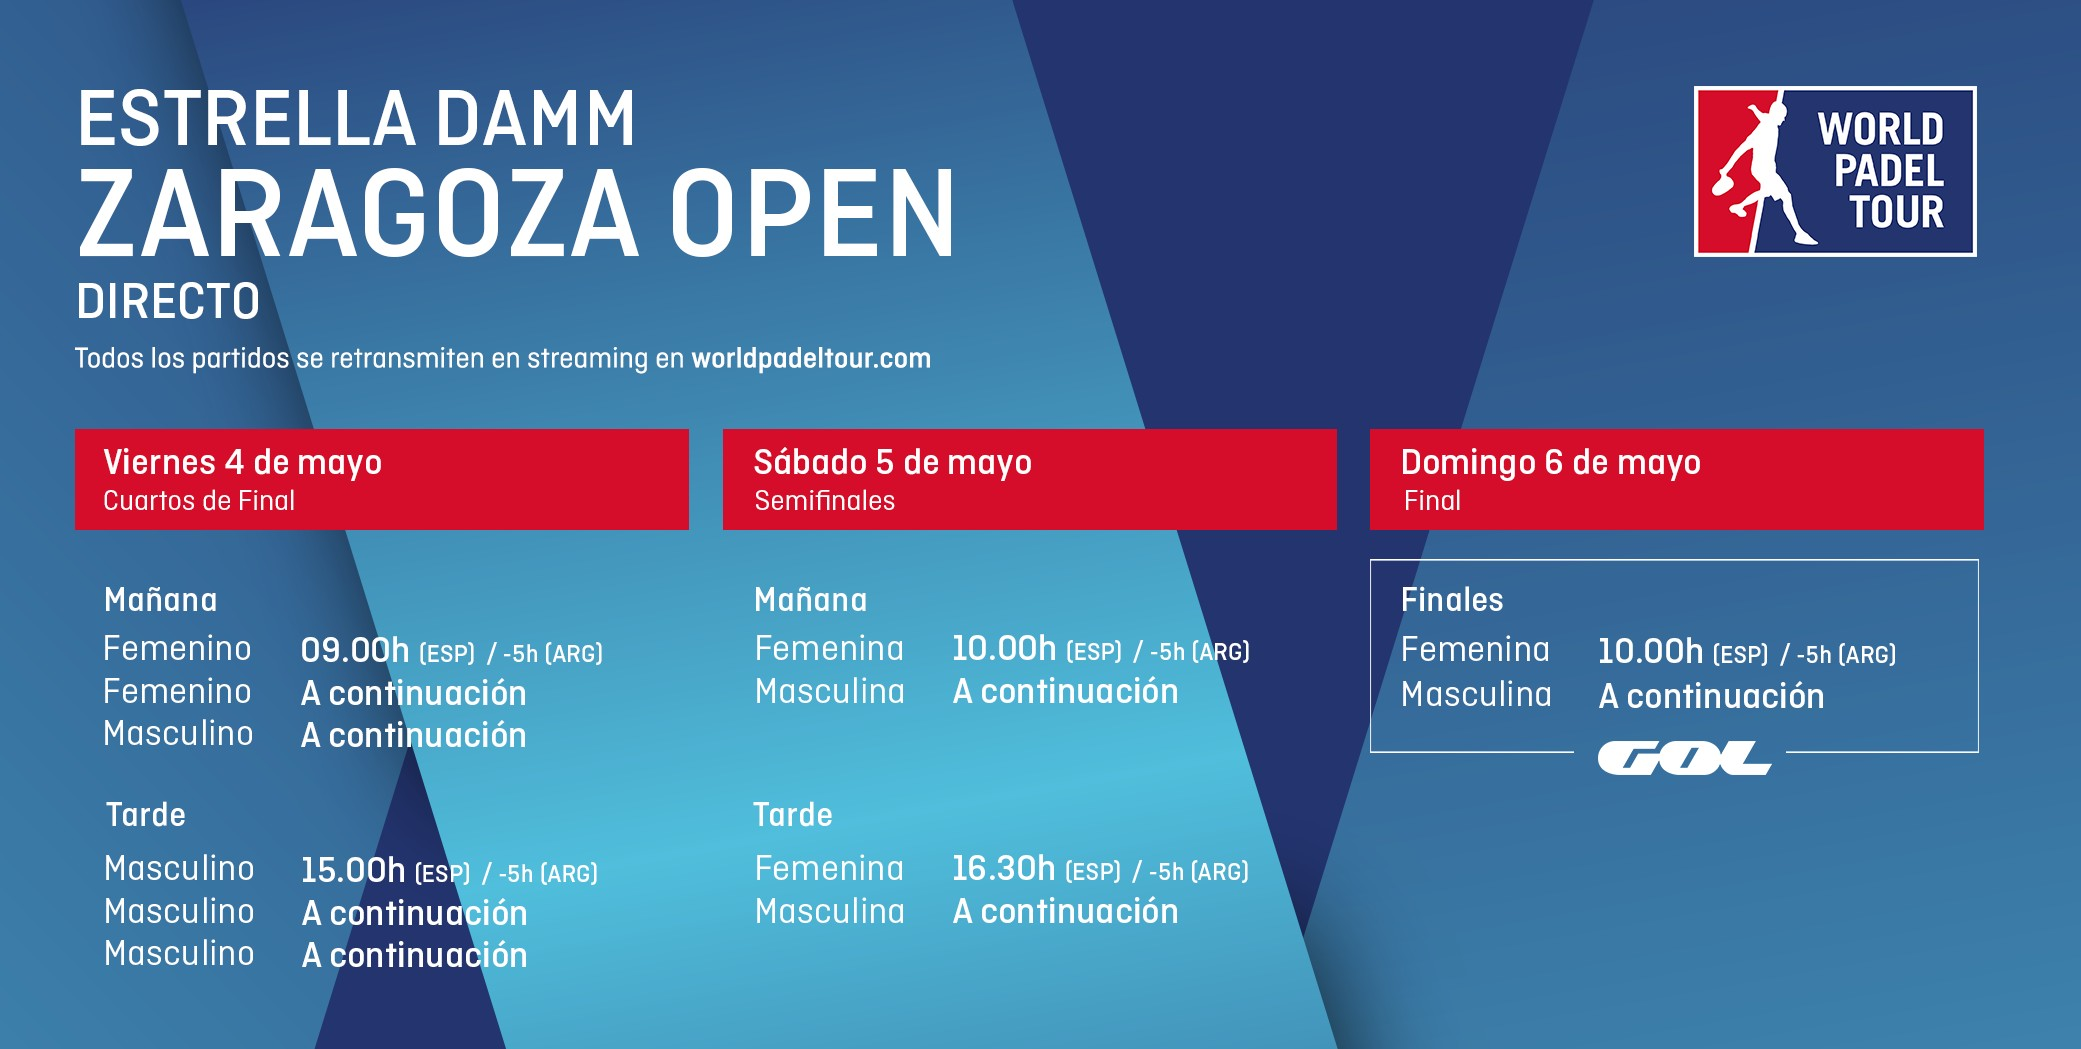 Horarios del streaming del Zaragoza Open